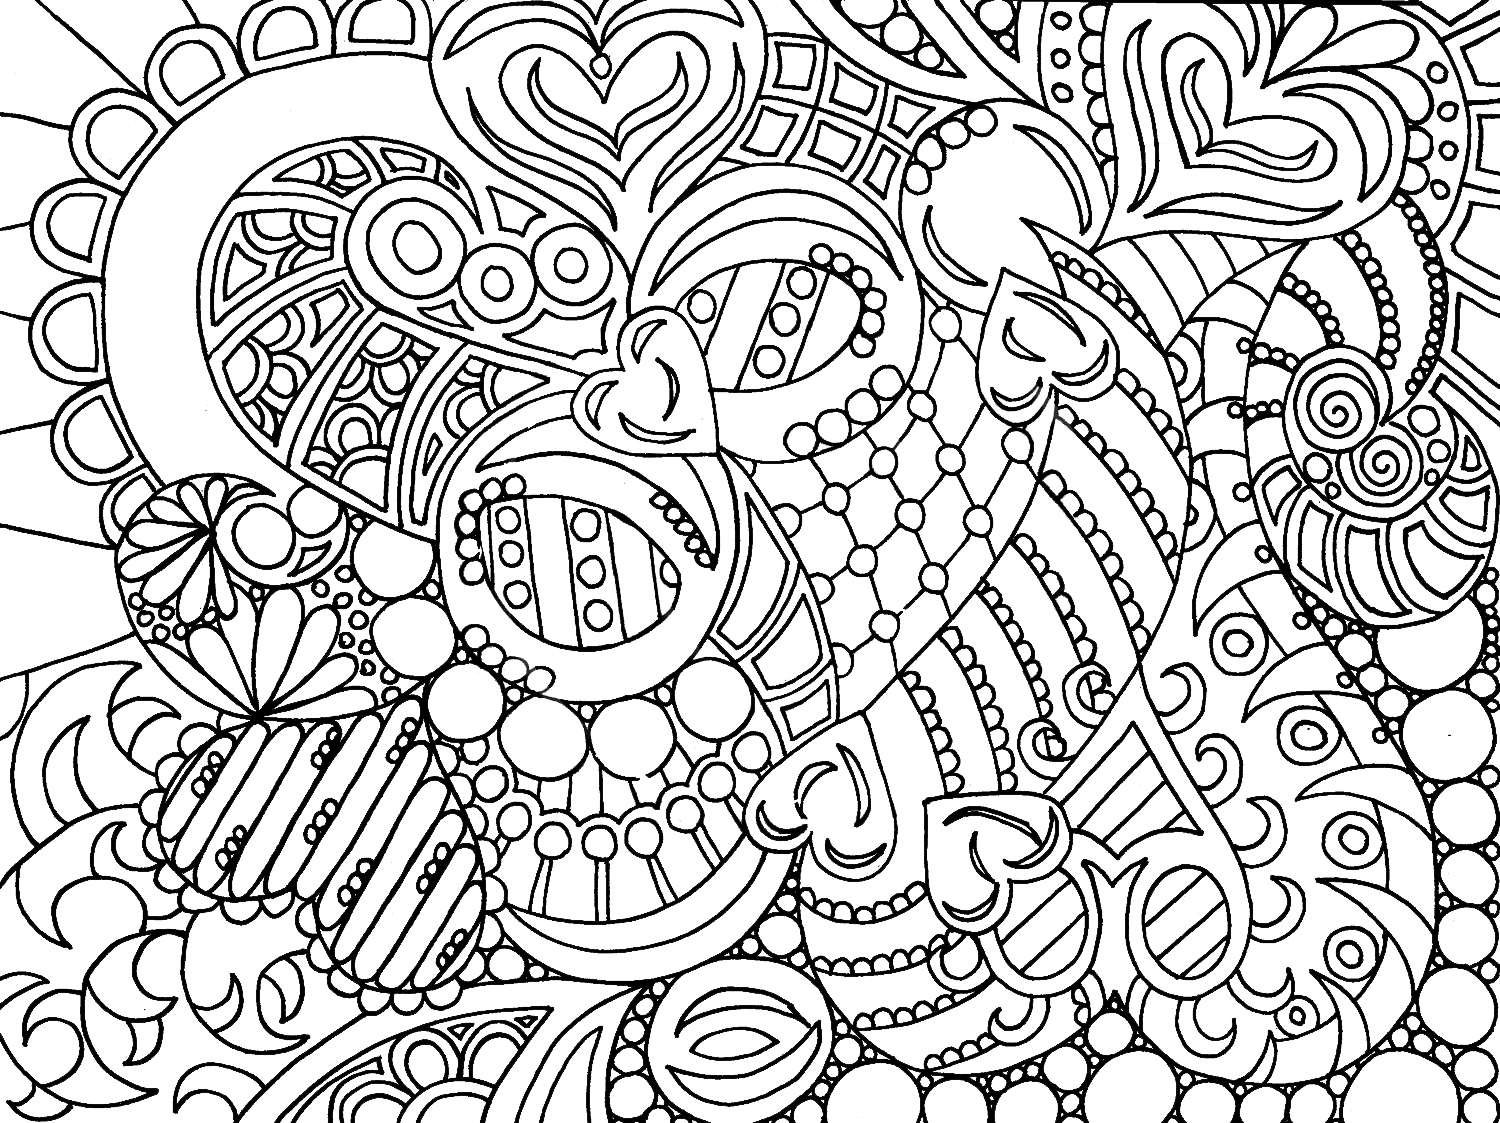 1500x1123 Luxury Free Advanced Coloring Pages Logo And Design Ideas